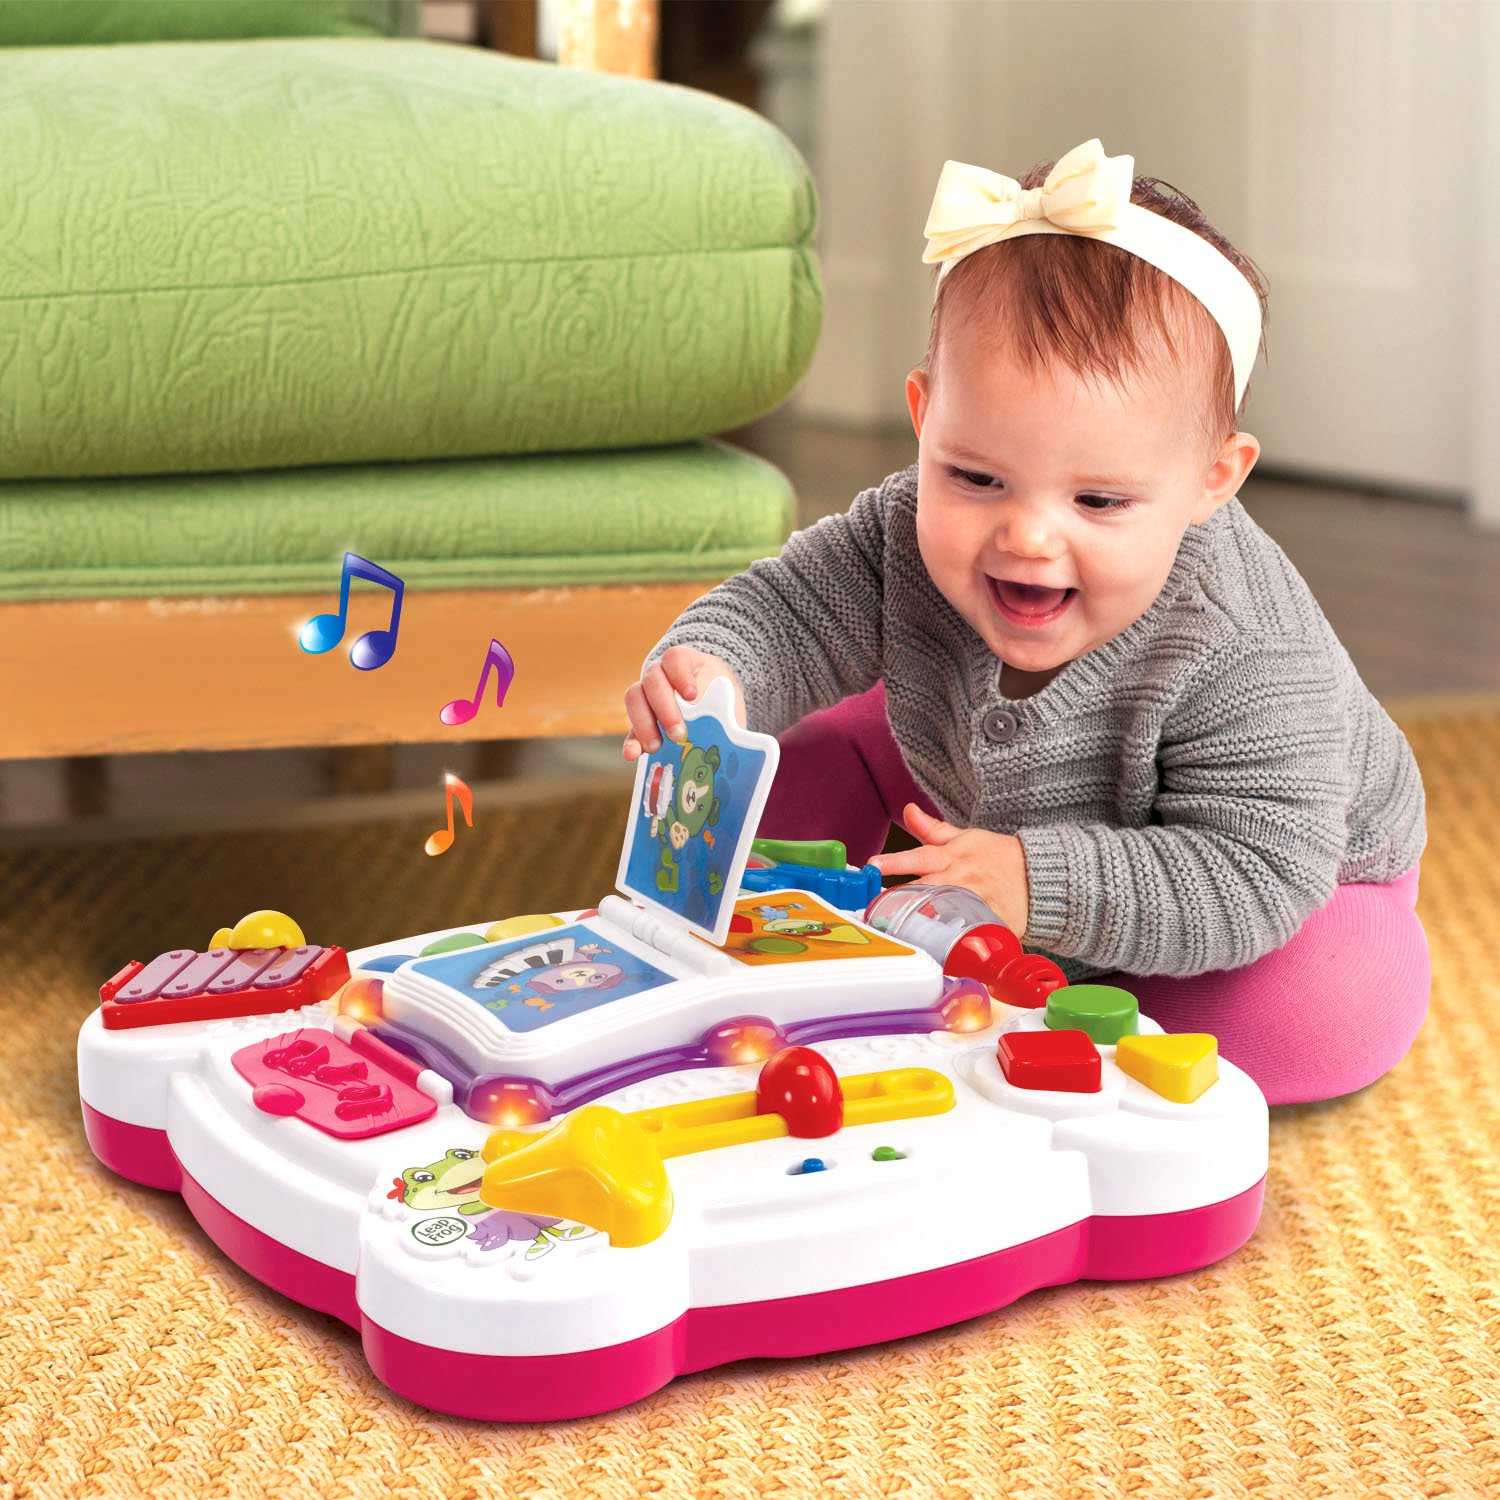 LeapFrog Learn and Groove Musical Table Activity Center Amazon Exclusive, Pink by LeapFrog (Image #5)